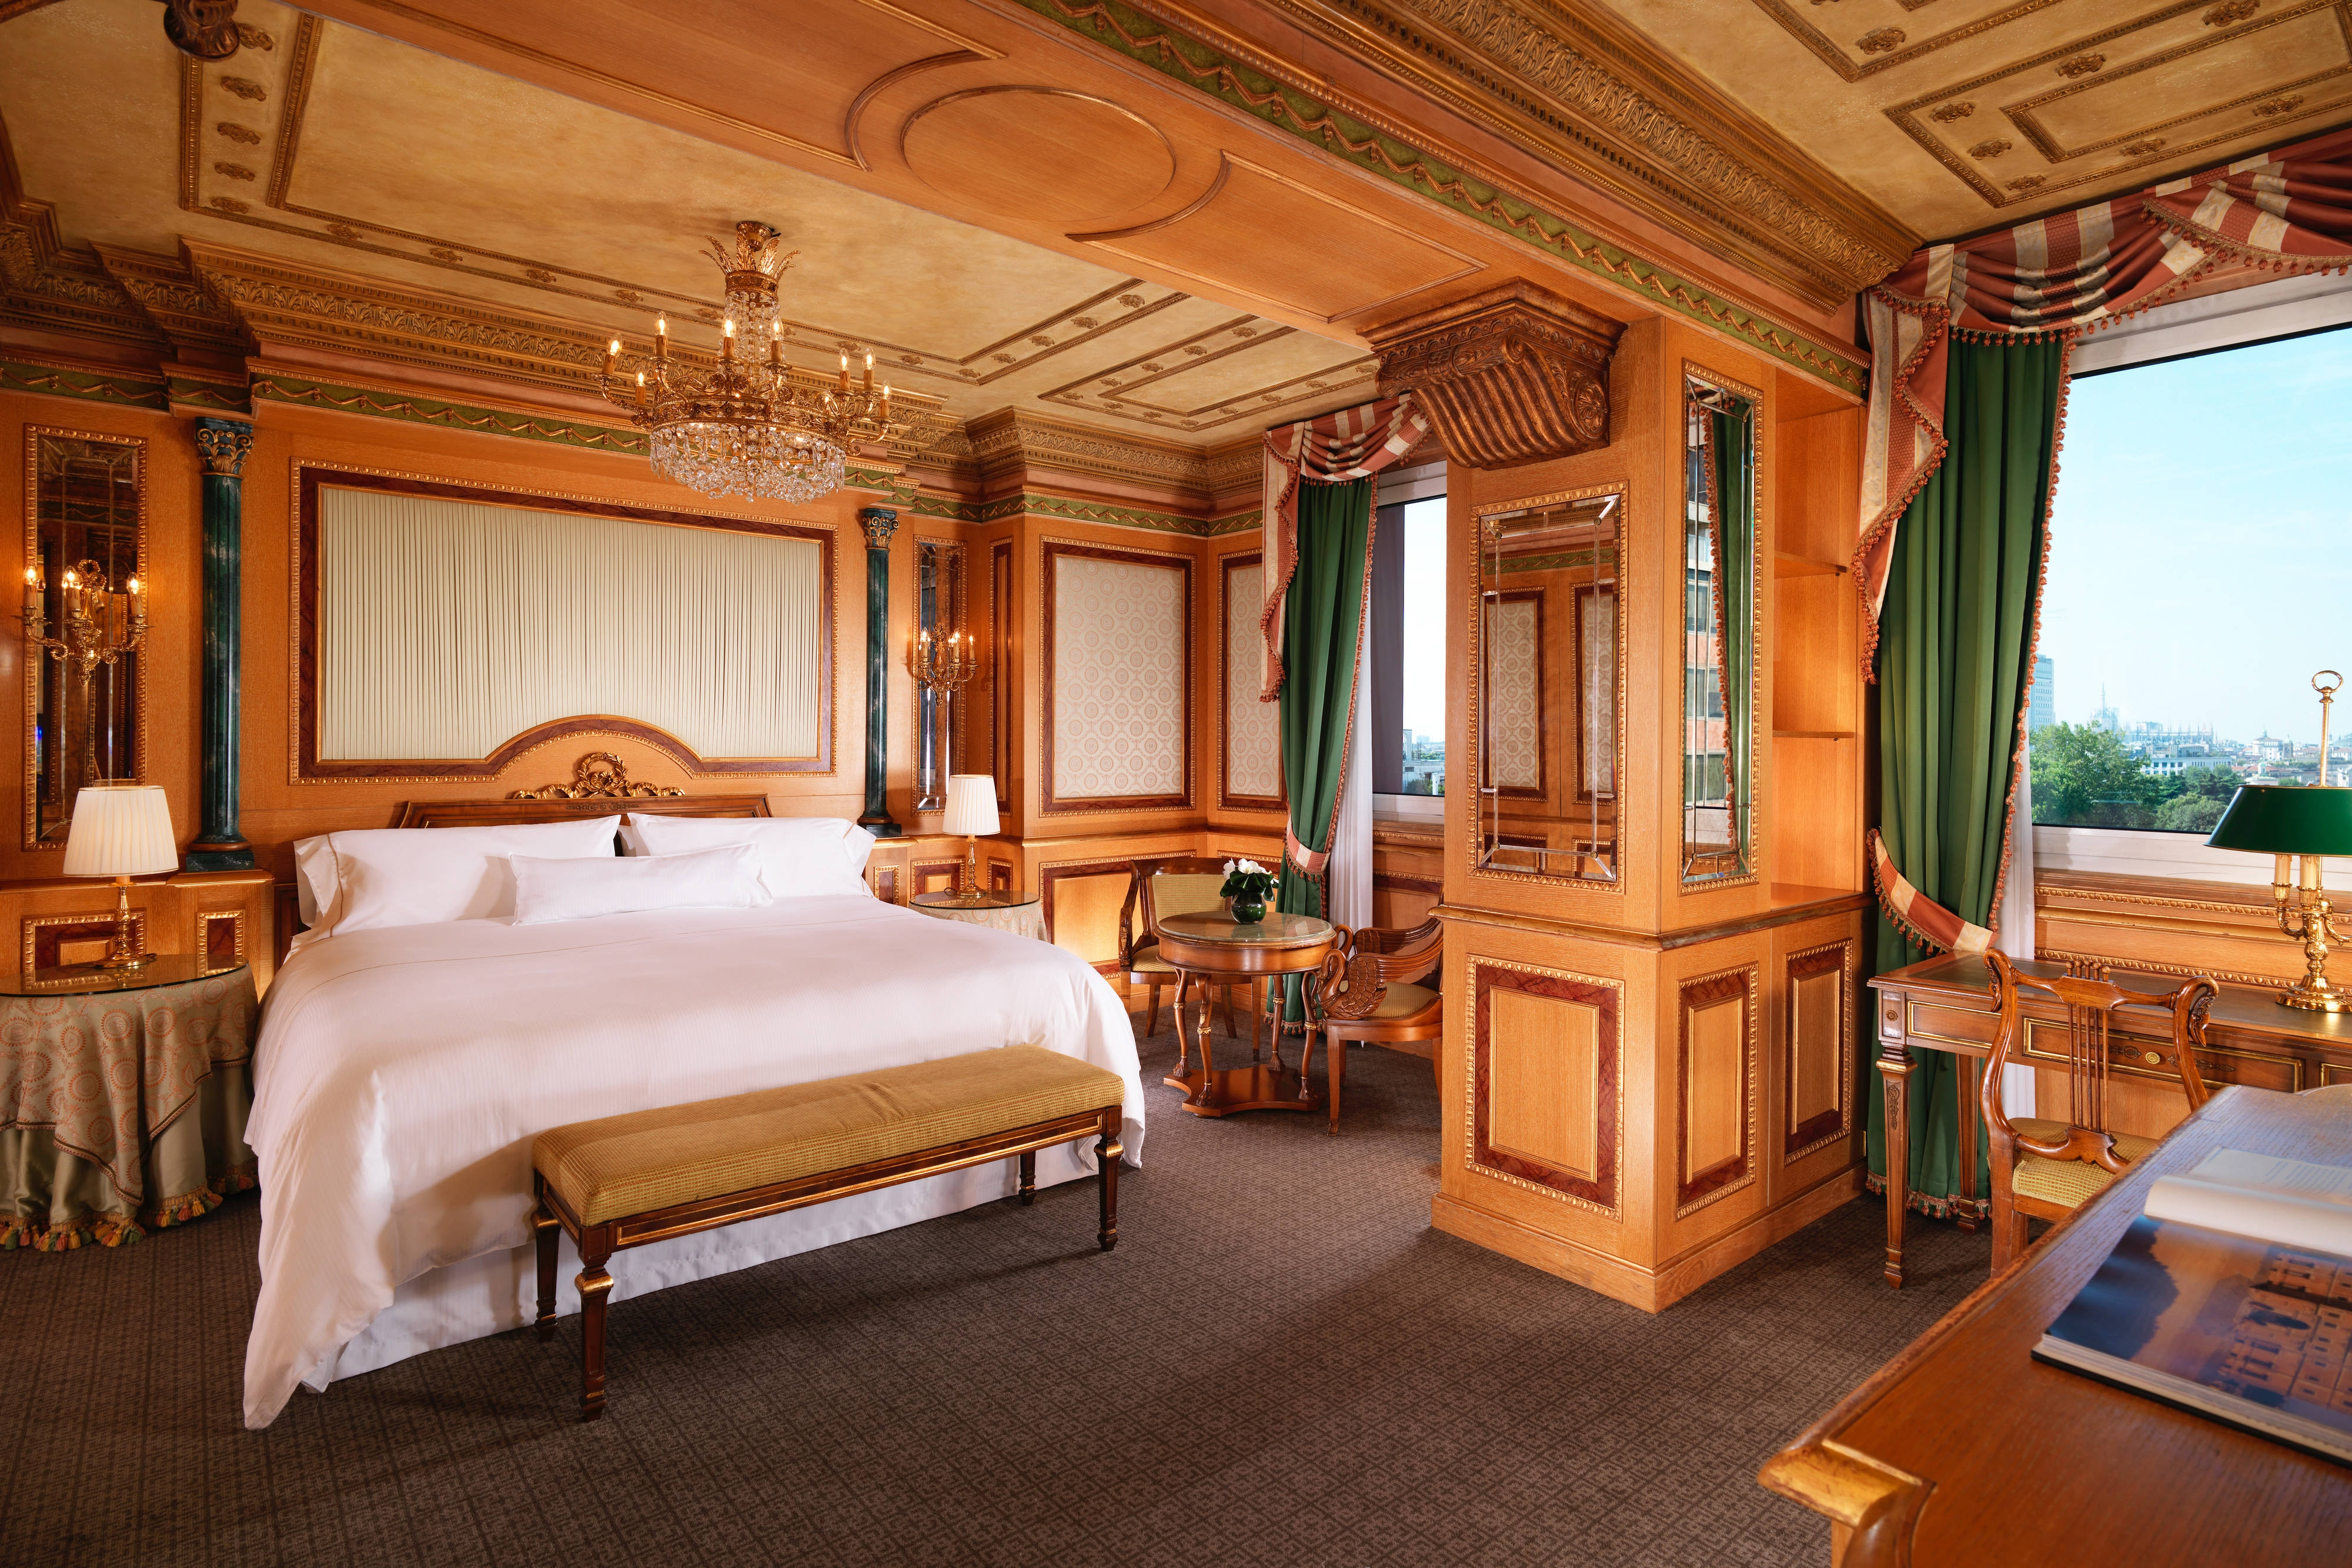 Grand Deluxe Imperial Room